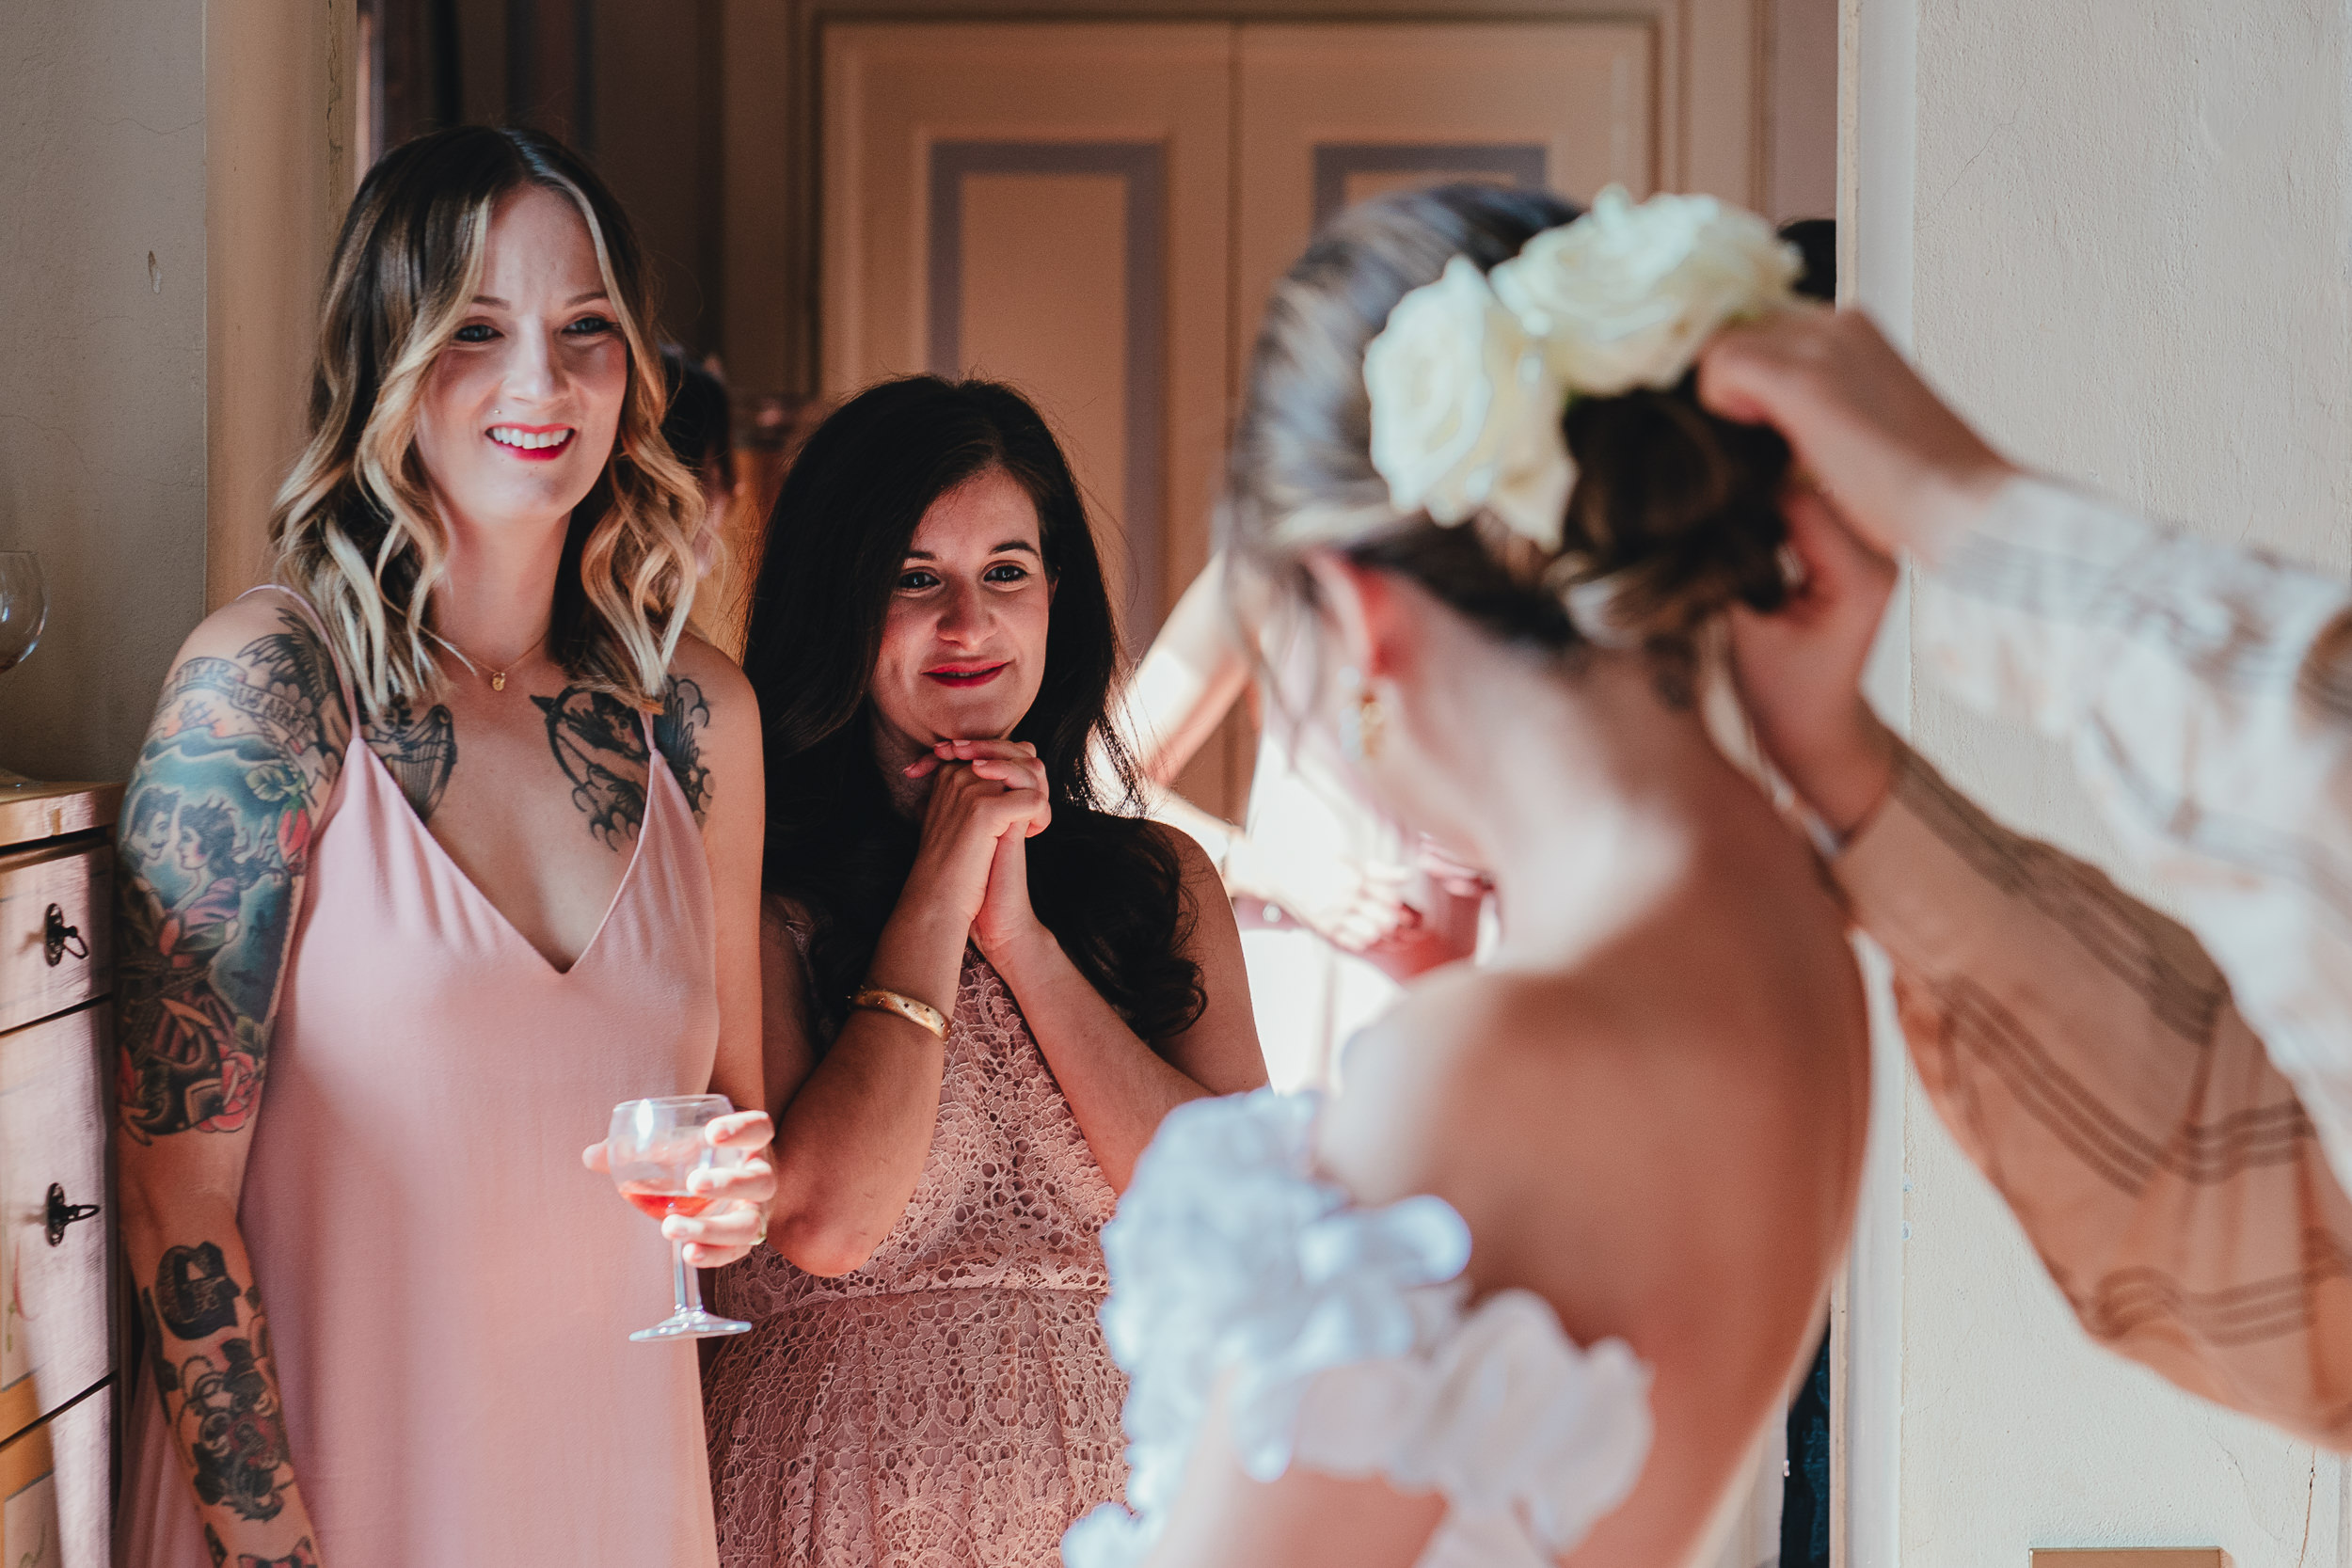 Tuscan Villa Wedding - Finishing touches to the Bride's hair